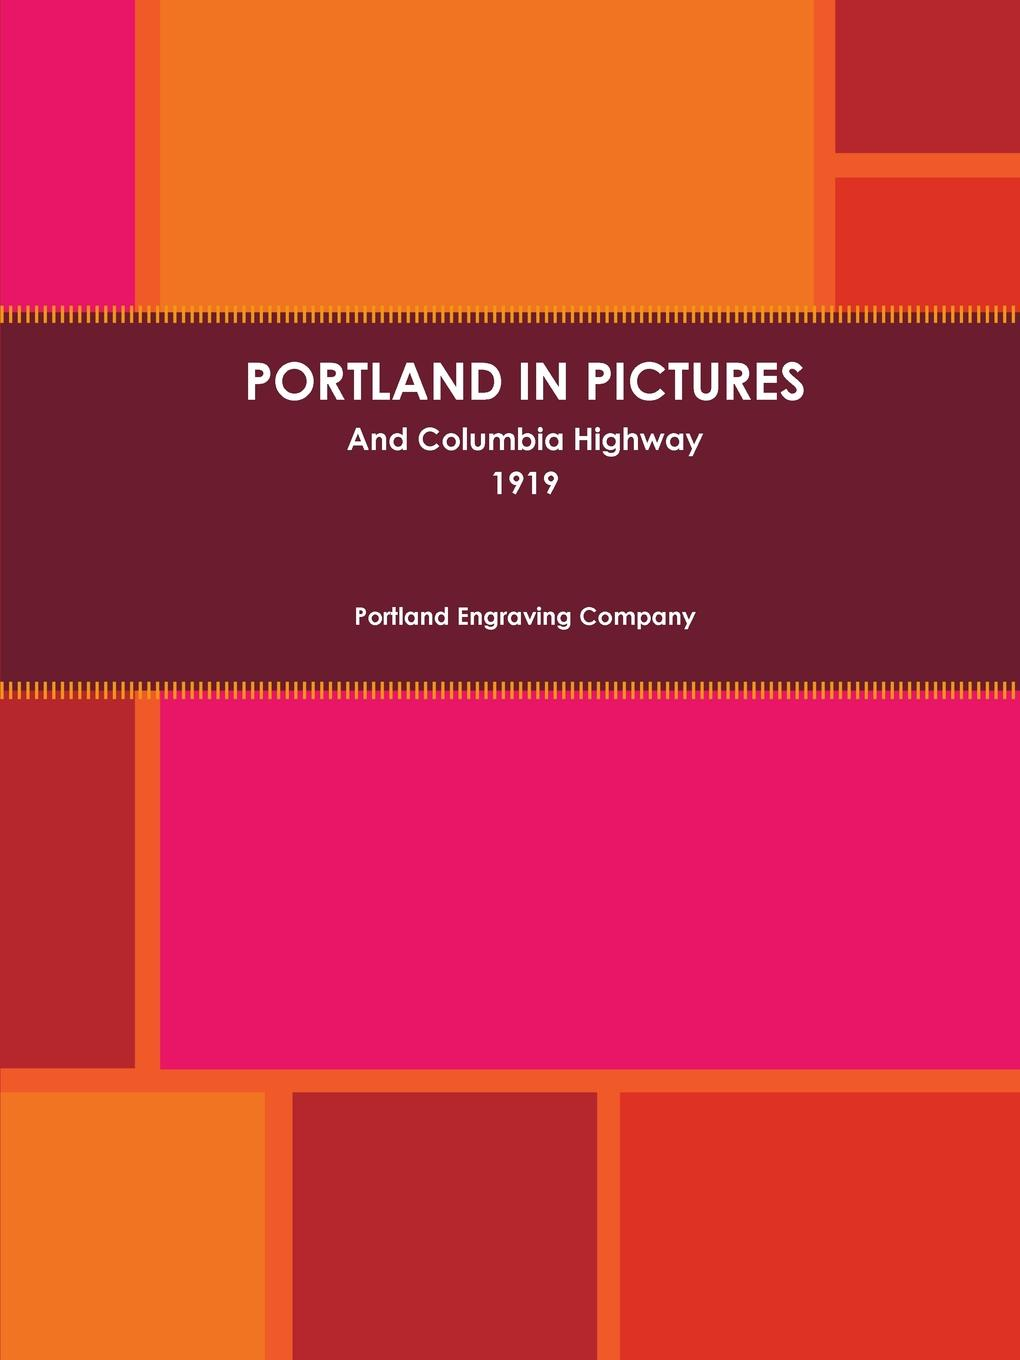 Portland Engraving Company Portland In Pictures And Columbia Highway (1919)